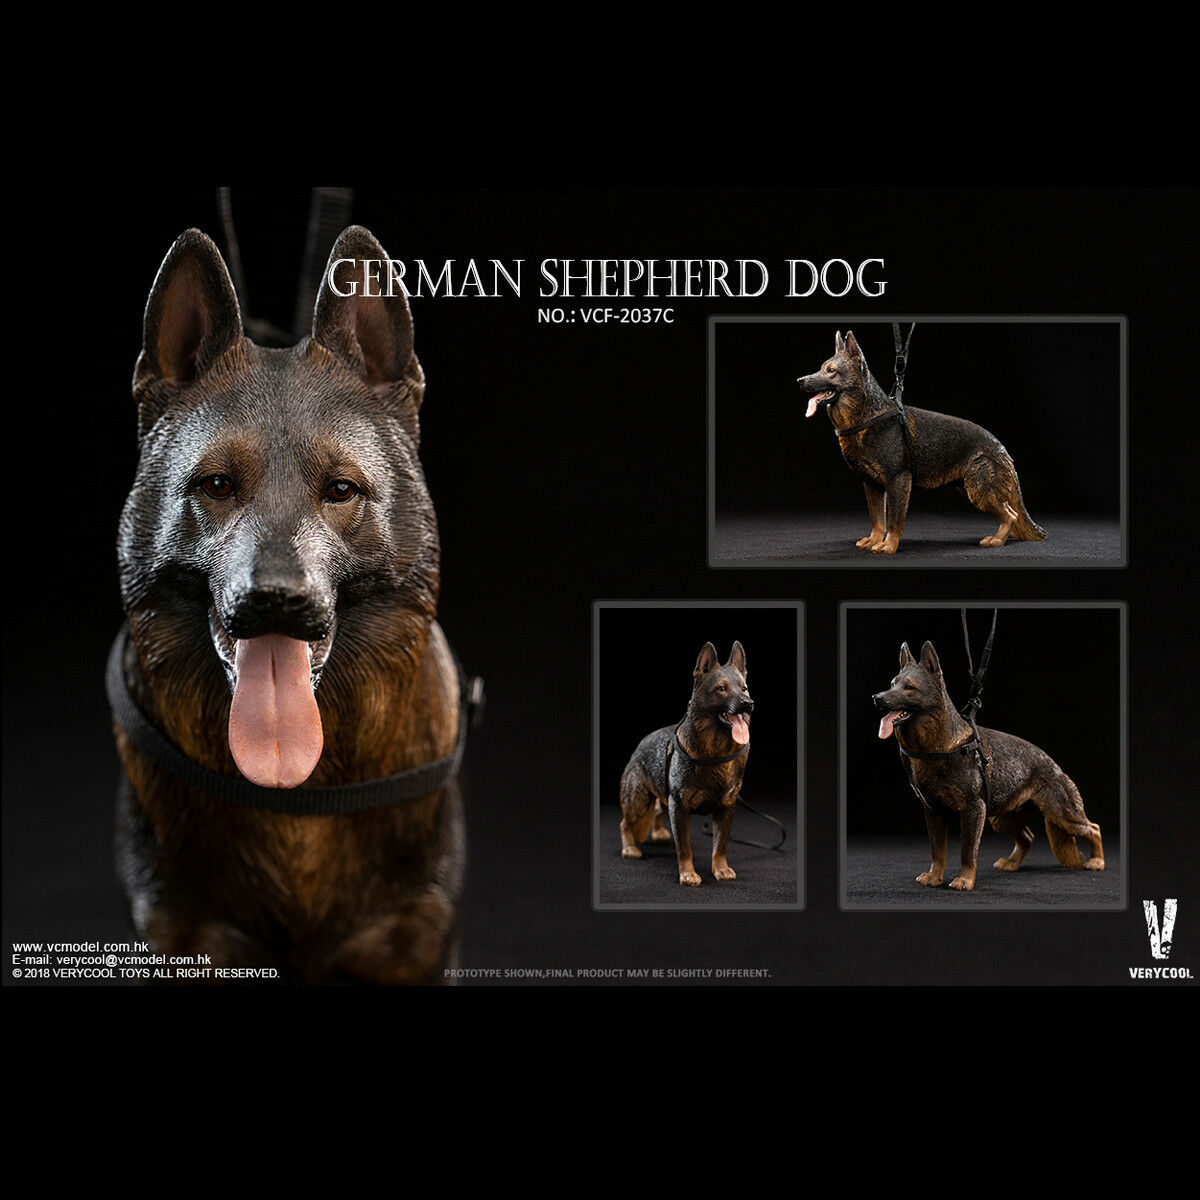 VERYCOOL VCF-2037C 1 6 Scale German Shepherd Dog Model